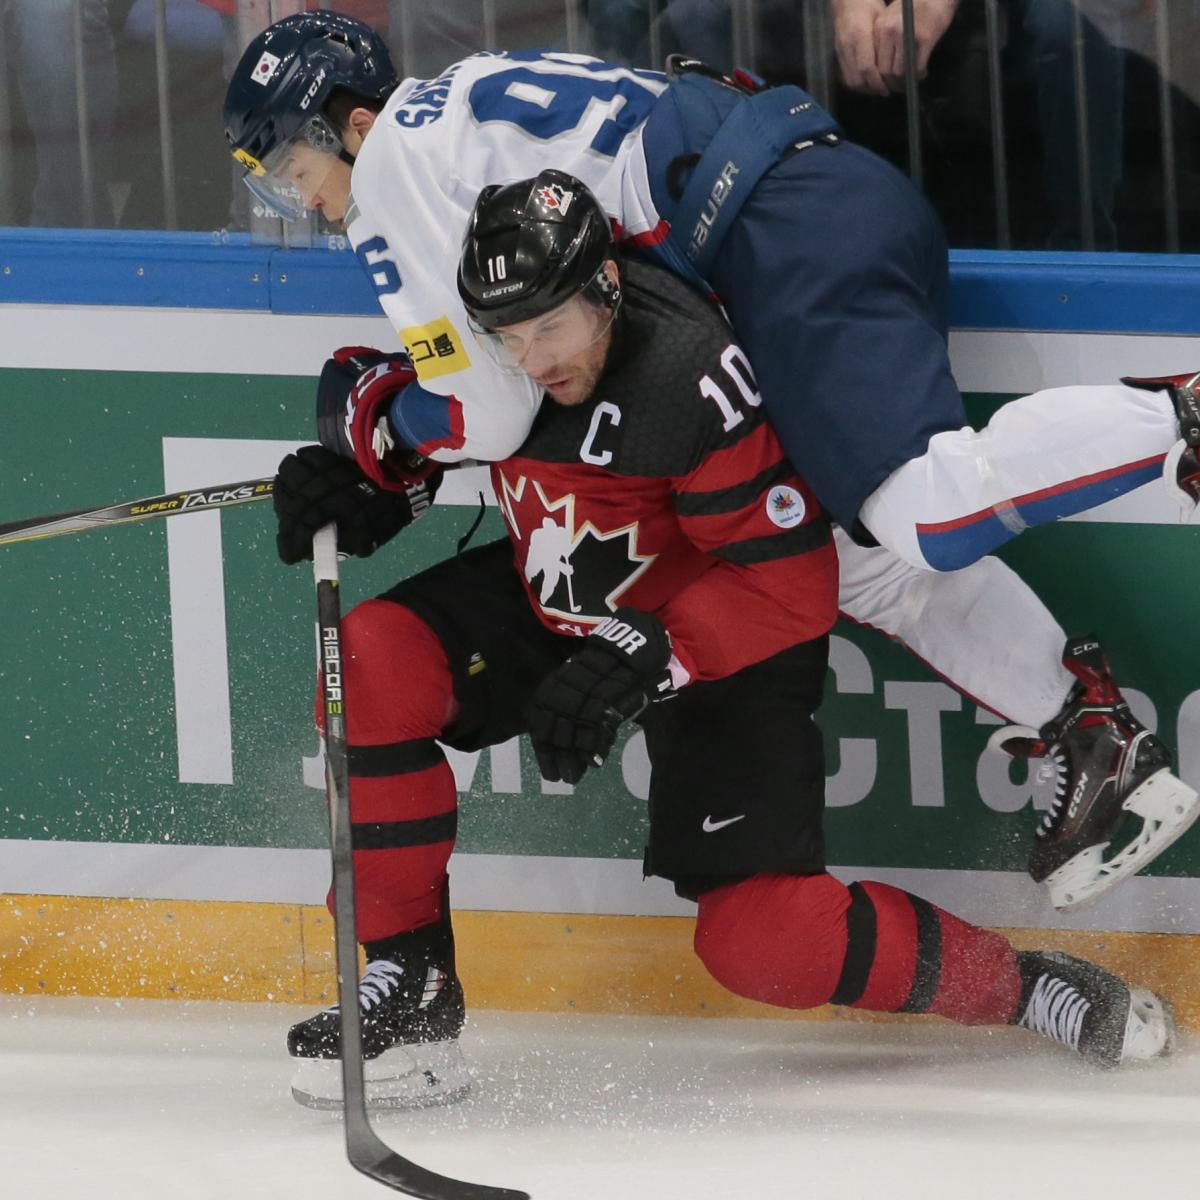 Essay Sample on Hockey as a Part National Identity in Canada | blogger.com